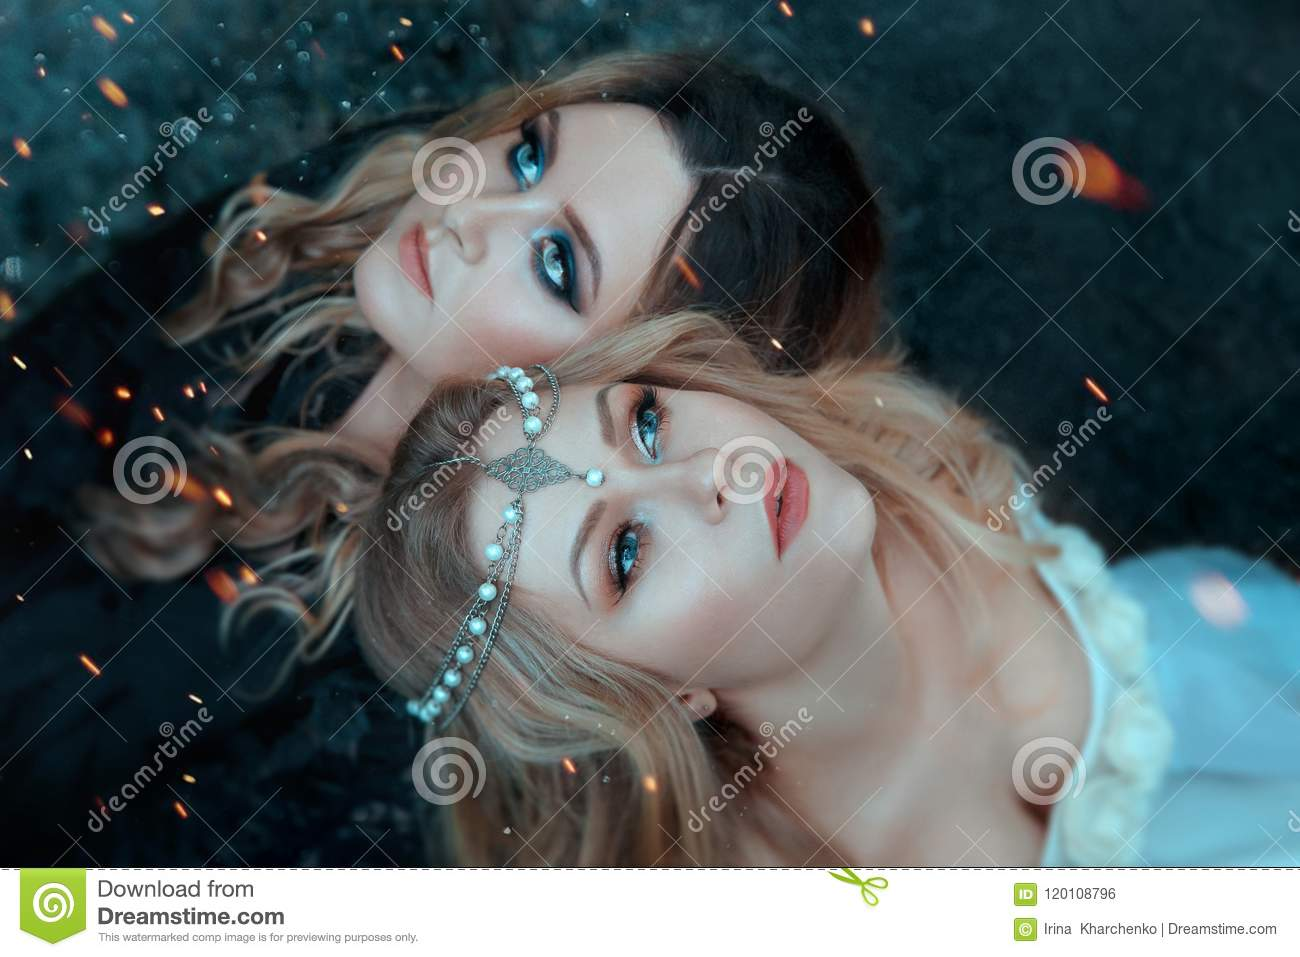 Two girls of the elements, opposites, love each other with affection. Around them, sparks, flashes of magic. Close-up